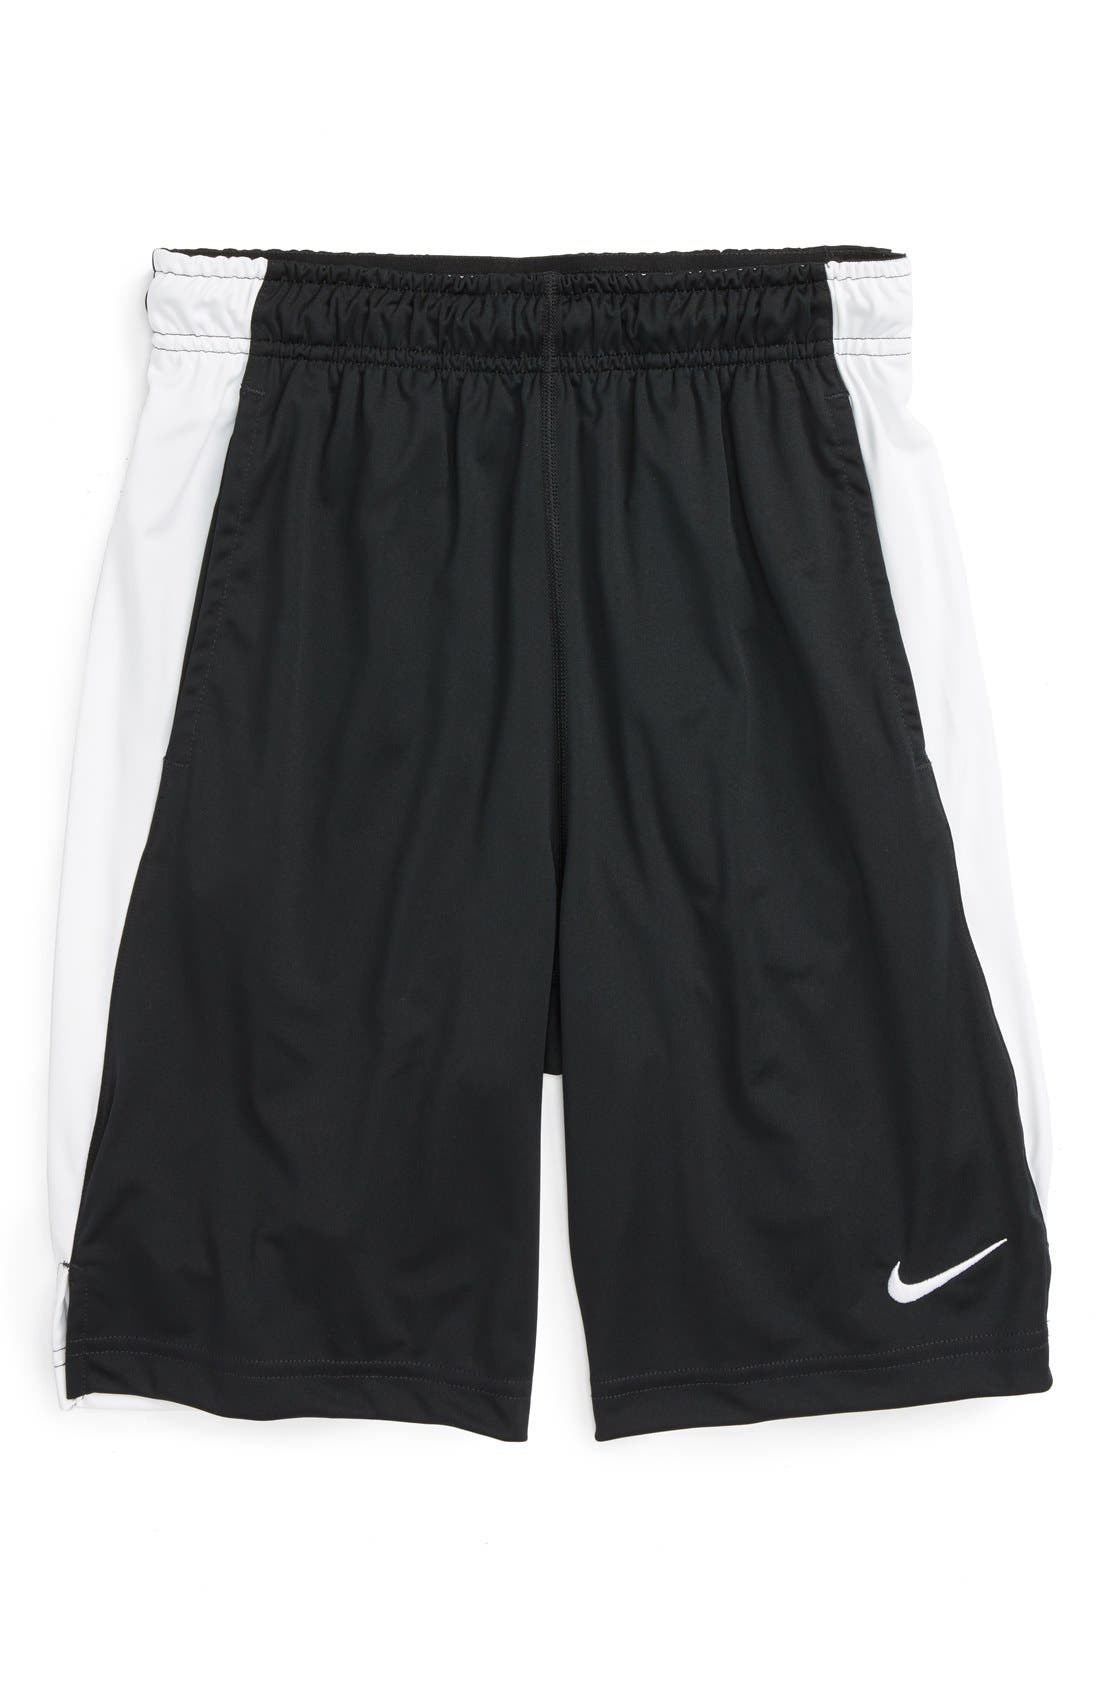 'Fly' Dri-FIT Training Shorts,                         Main,                         color,